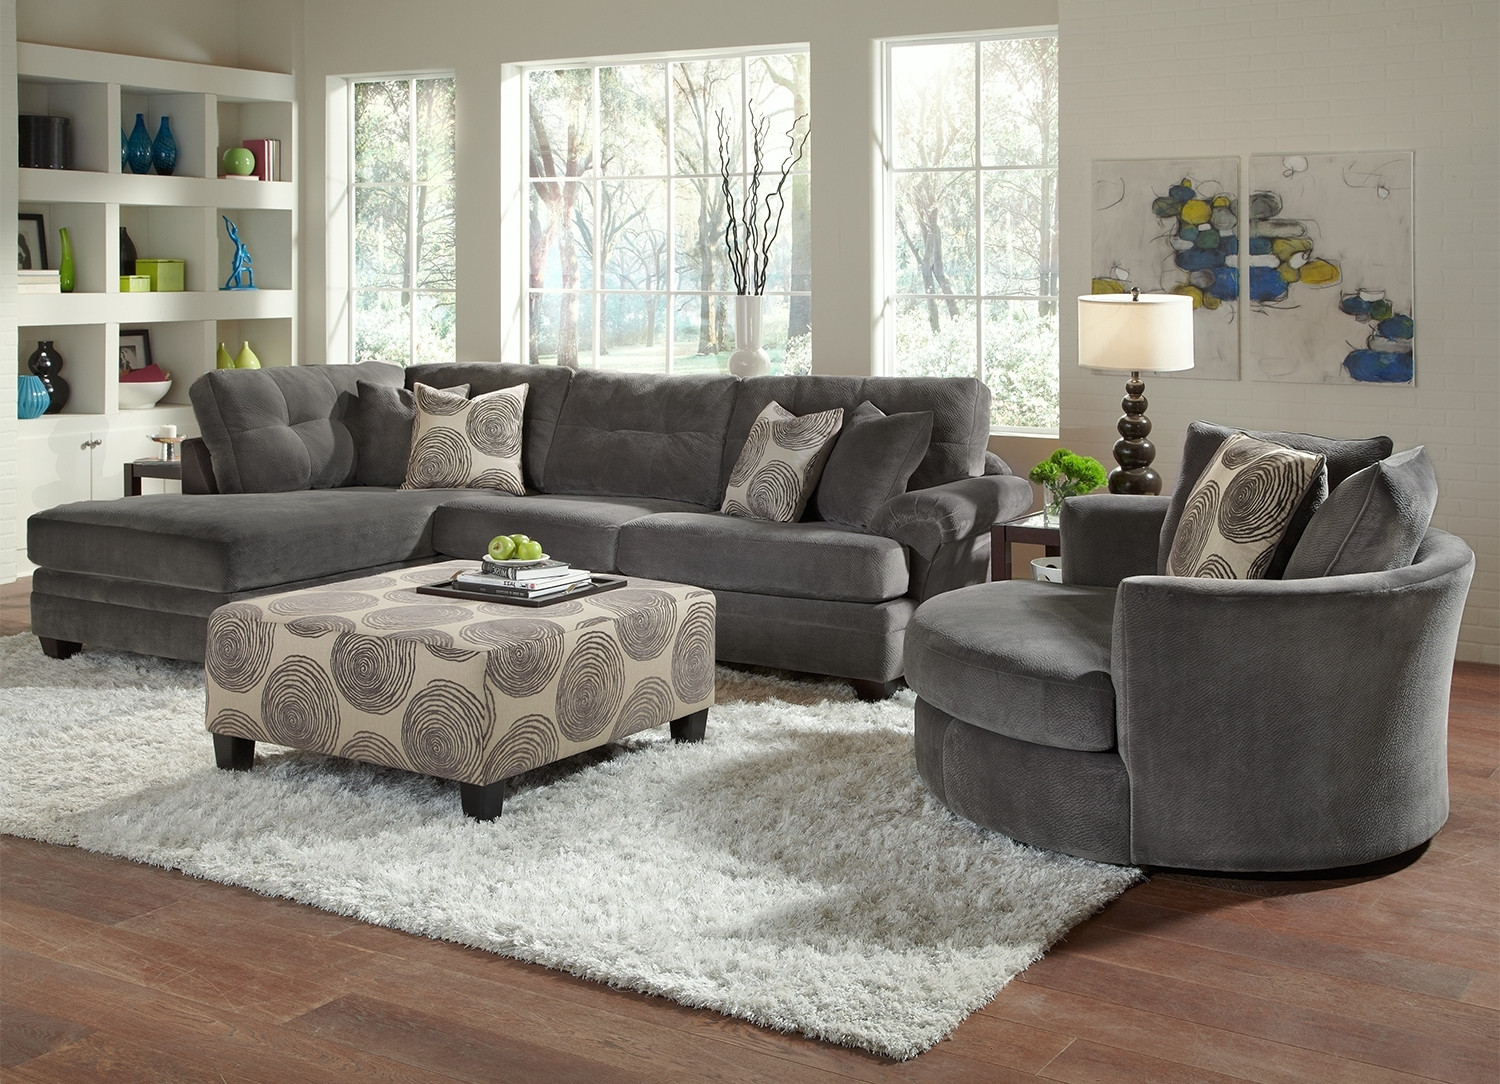 Modern Living Room Sets Cheap  Tips to Buy Swivel Chairs for Living Room